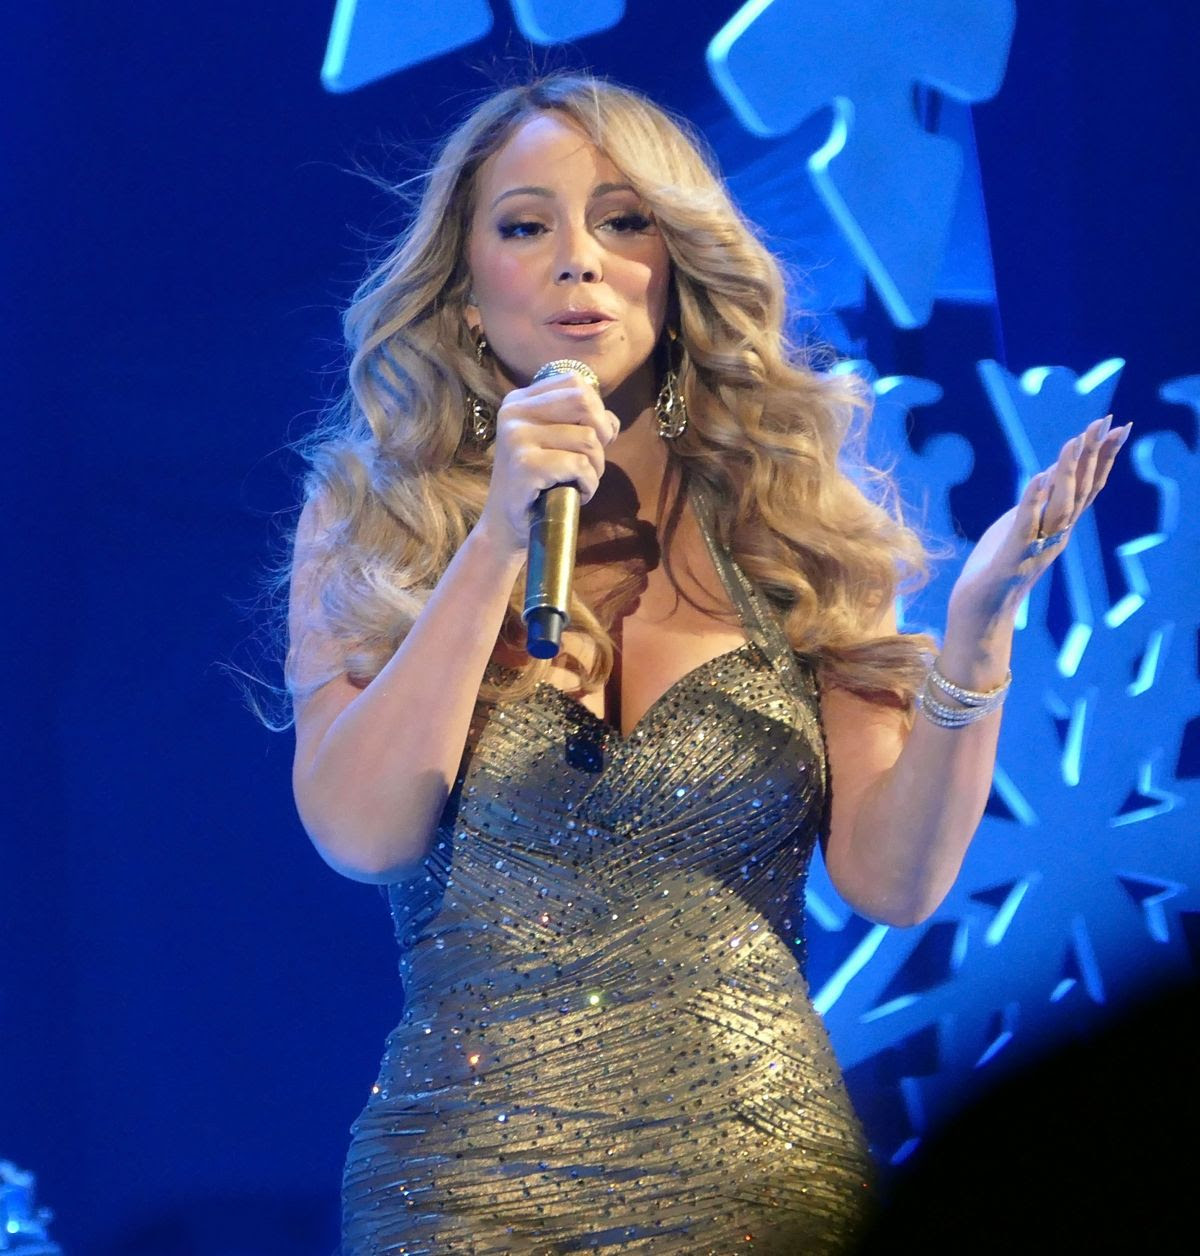 MARIAH CAREY Performs at a Concert in New York 12/09/2015